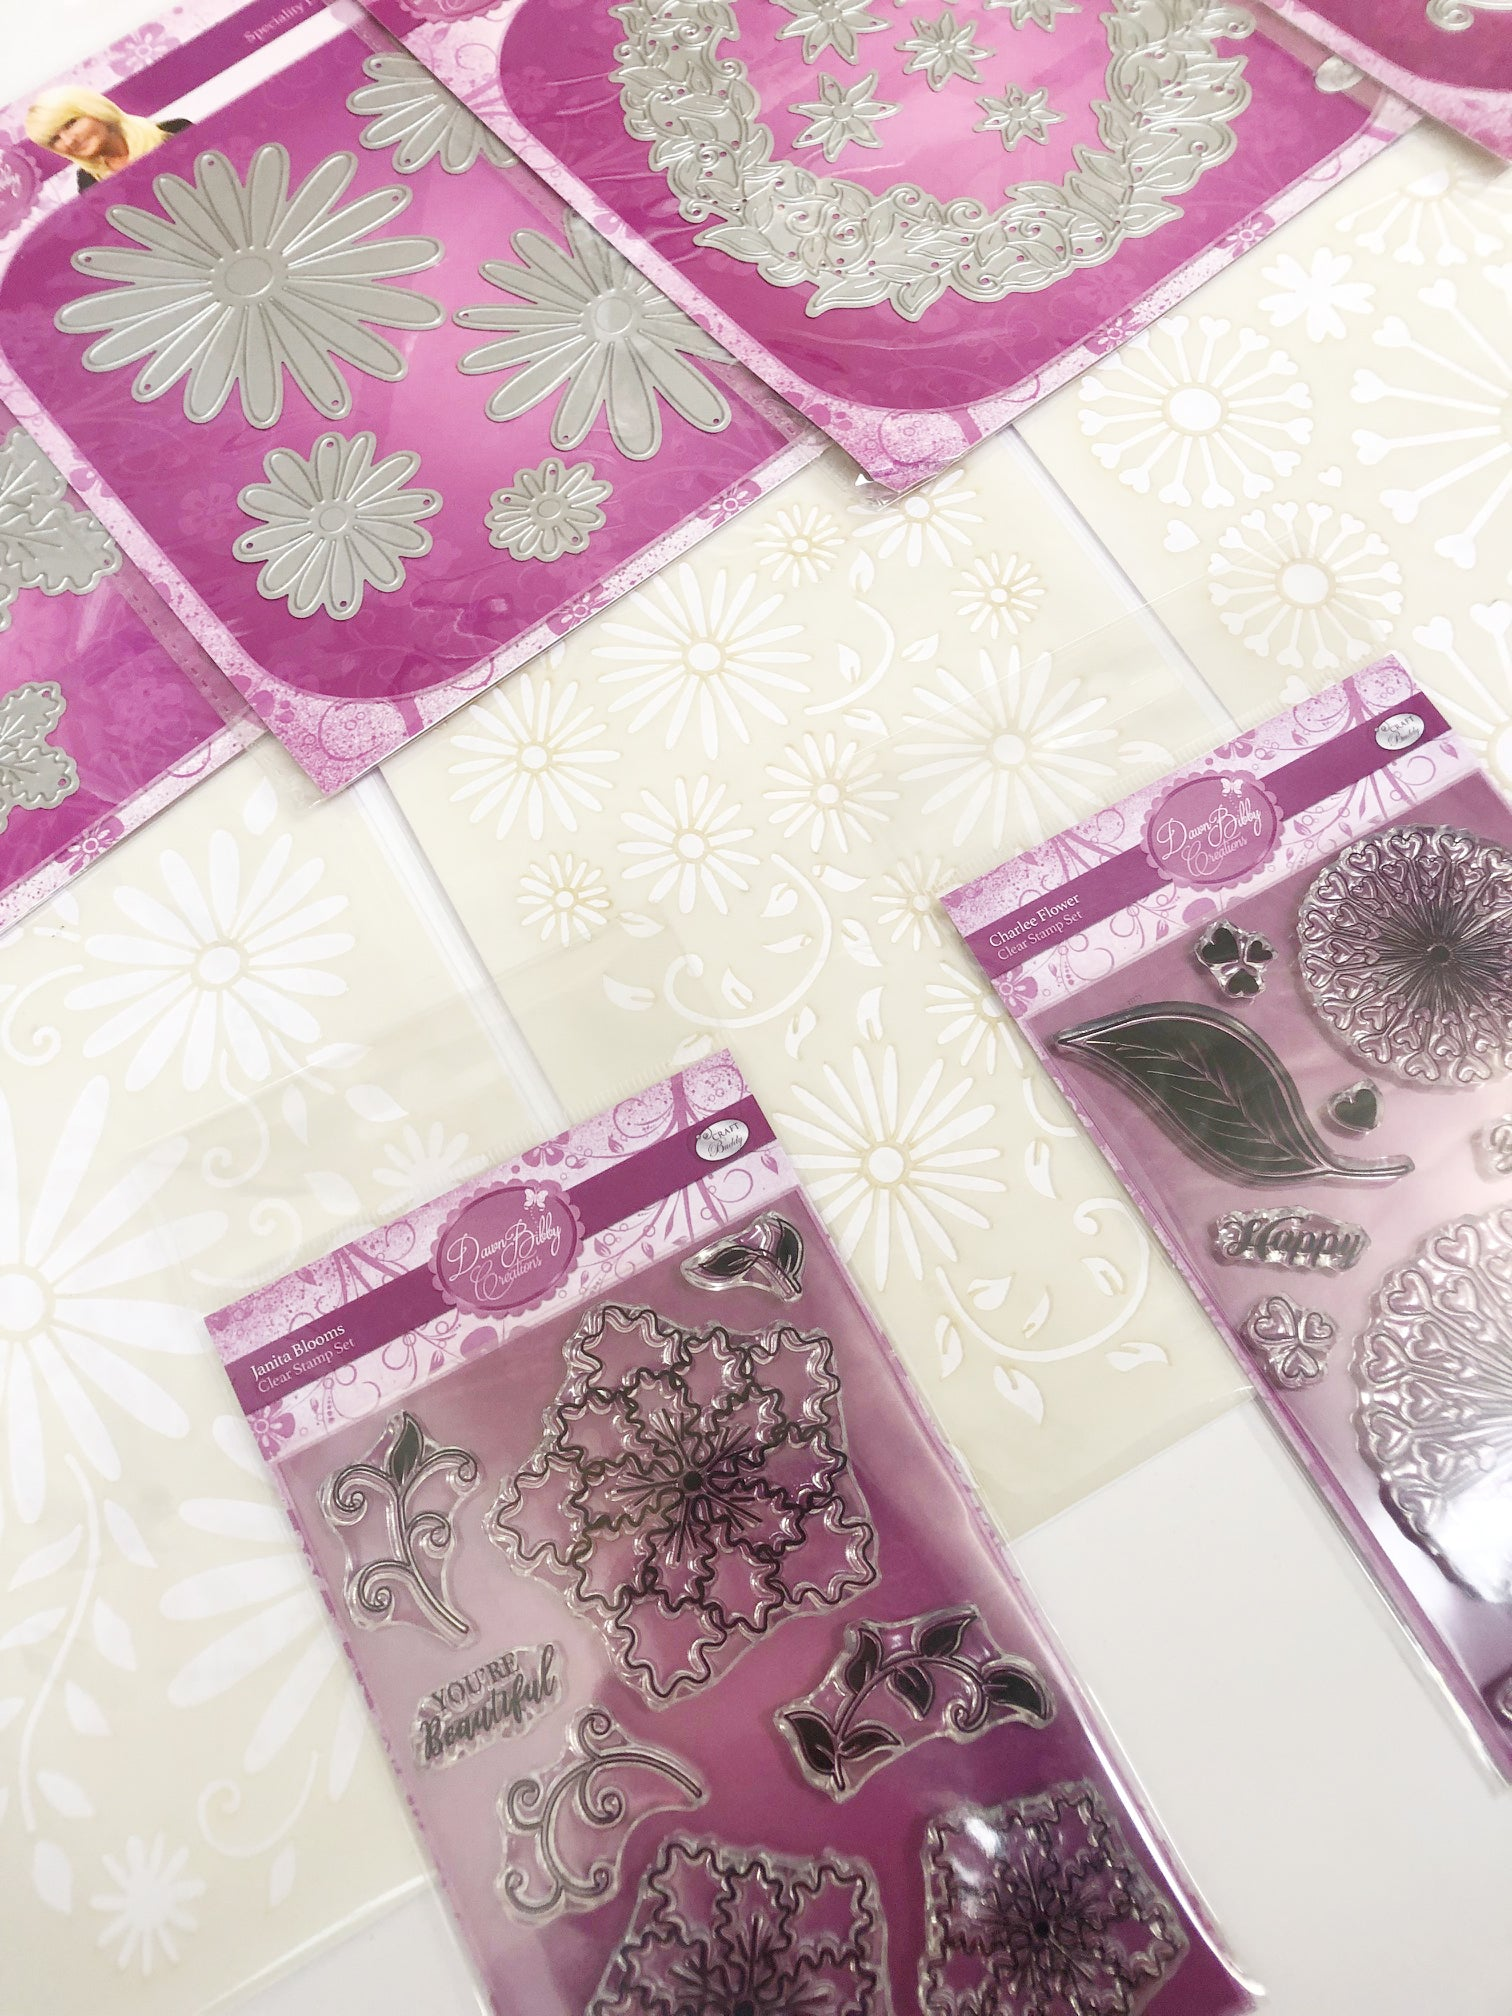 Dawn Bibby Fantasy Flowers Dies, Stamps & Stencils Complete Collection